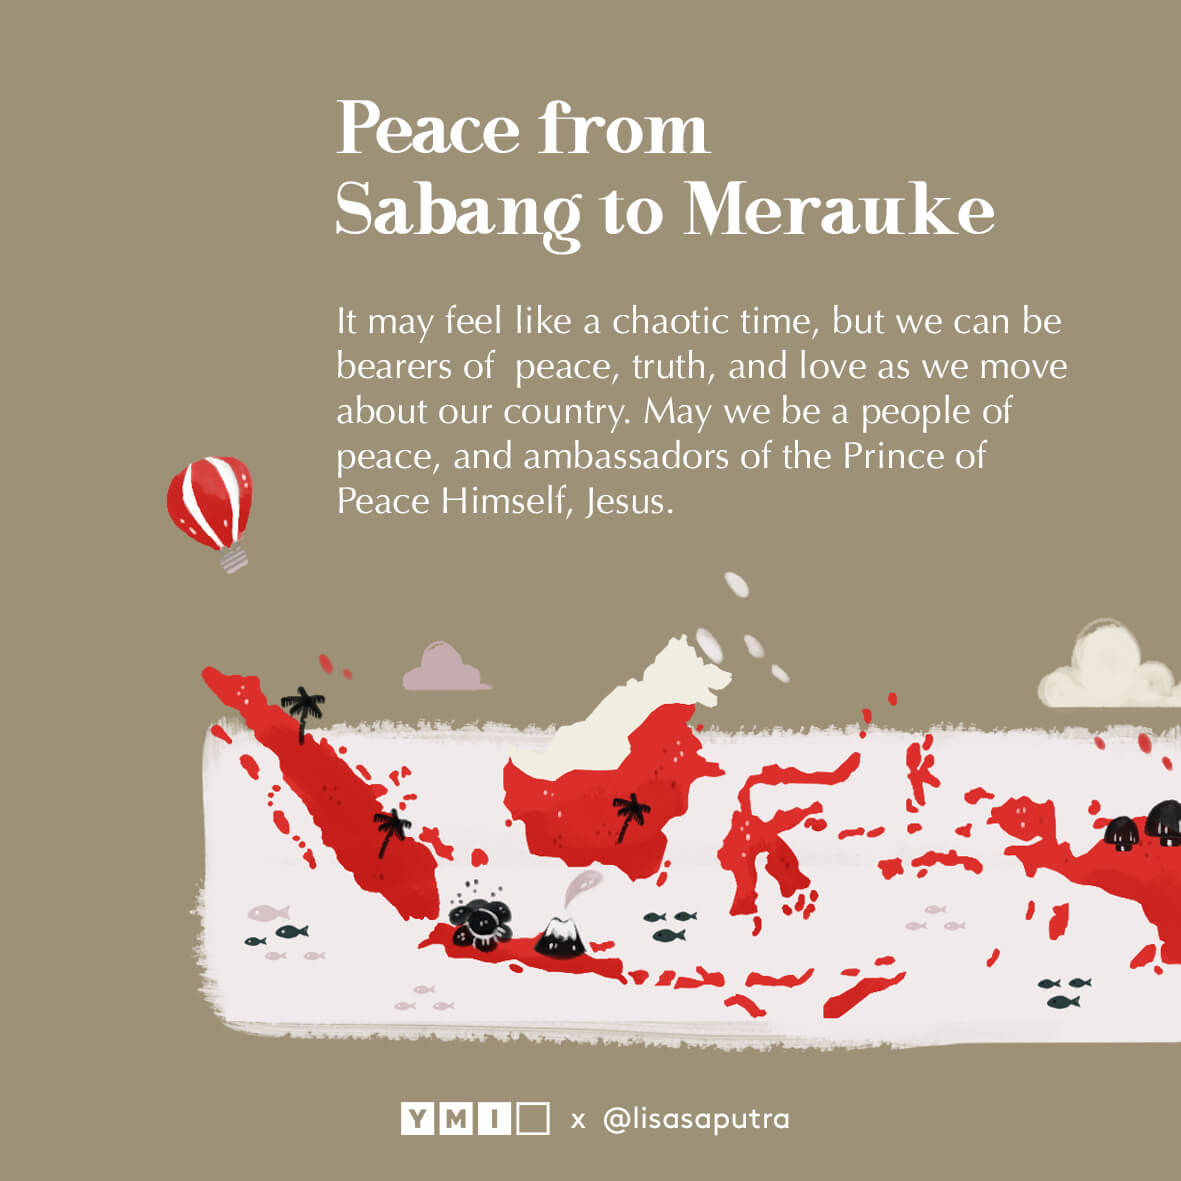 graphic image of Indonesia map